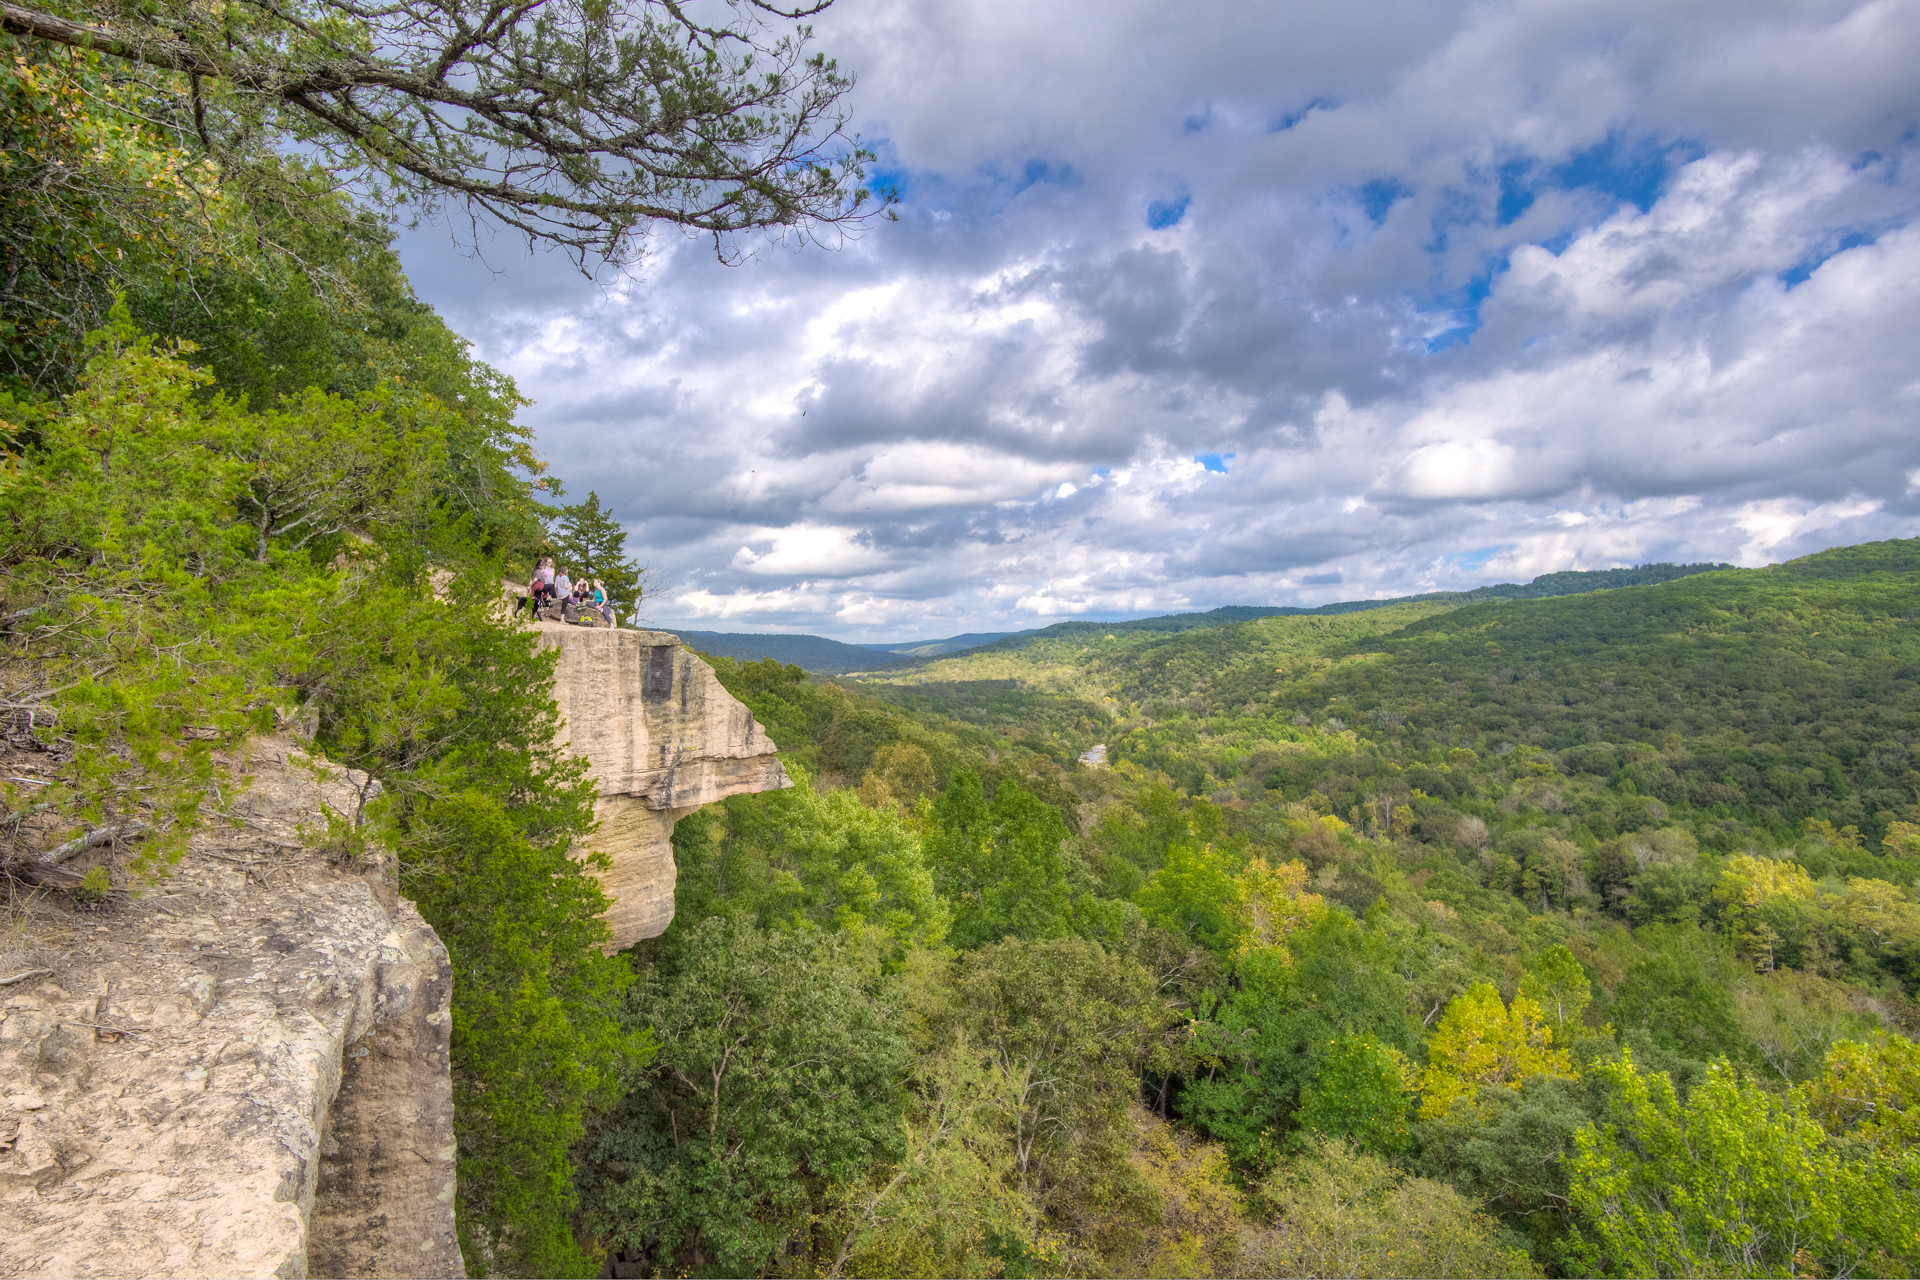 Yellow Rock Overlook, Devils Den State Park in Arkansas. A youth group enjoys fellowship and a view.